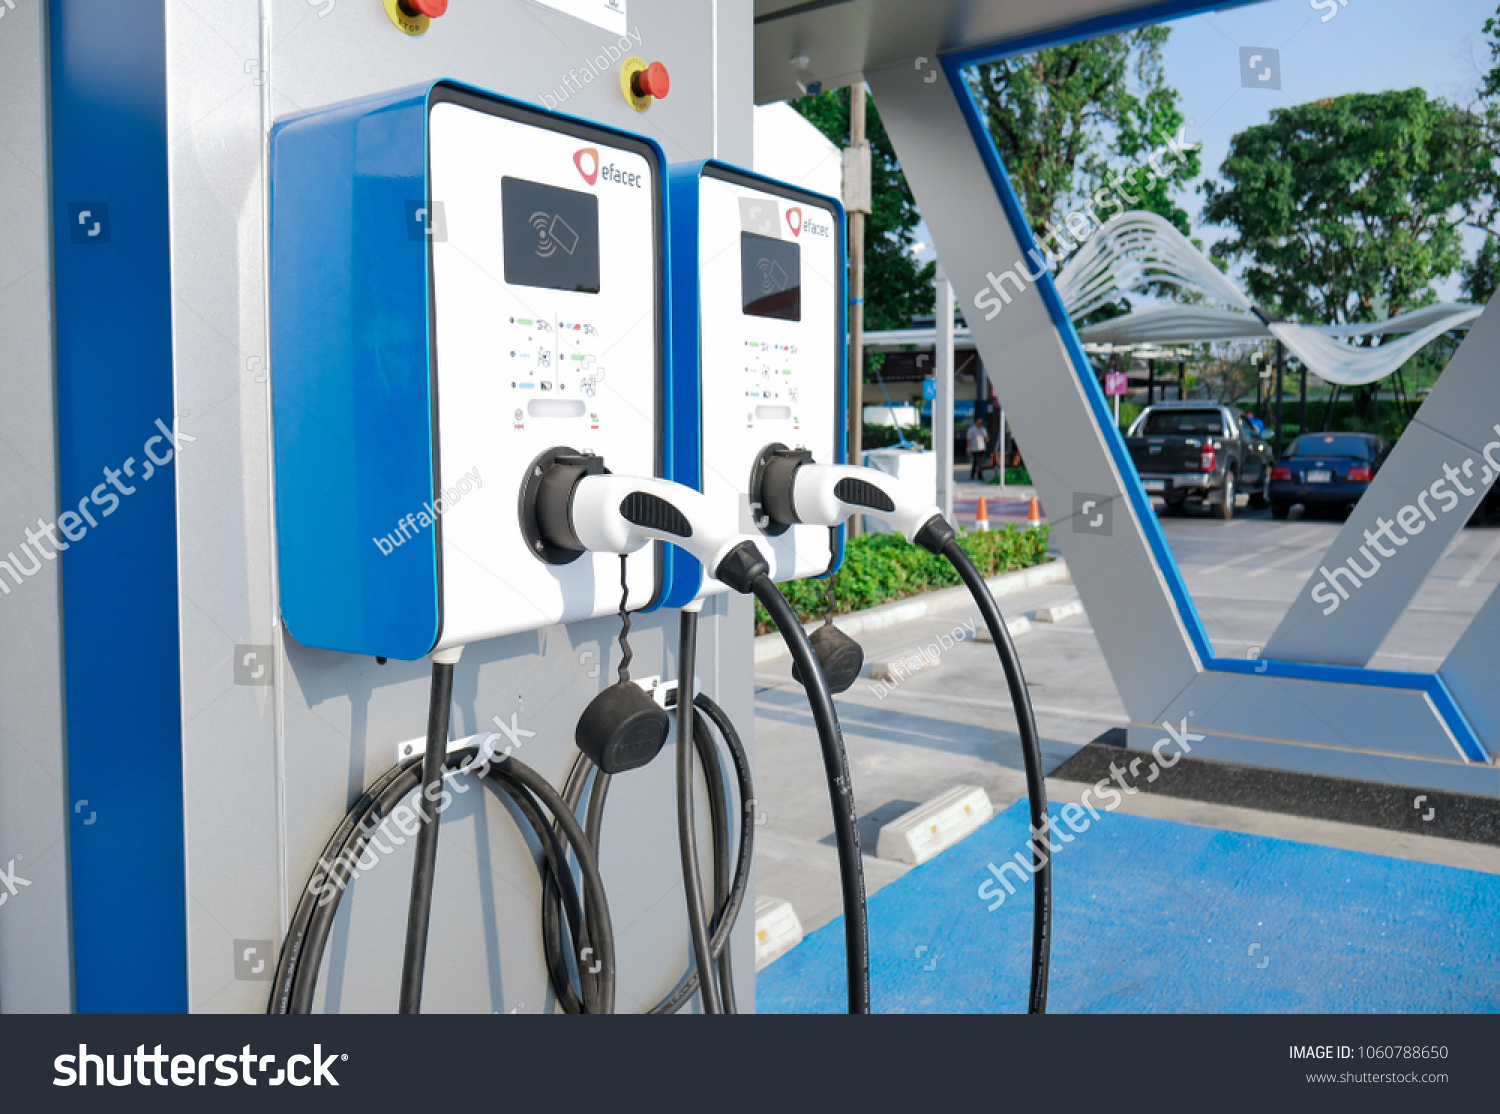 Ptt Have Electric Vehicle Charging Station Stock Photo Edit Now Car Stations On Gas Pocket Bike Wiring Diagrams Ev Sevice In Petrol Bangkok 4